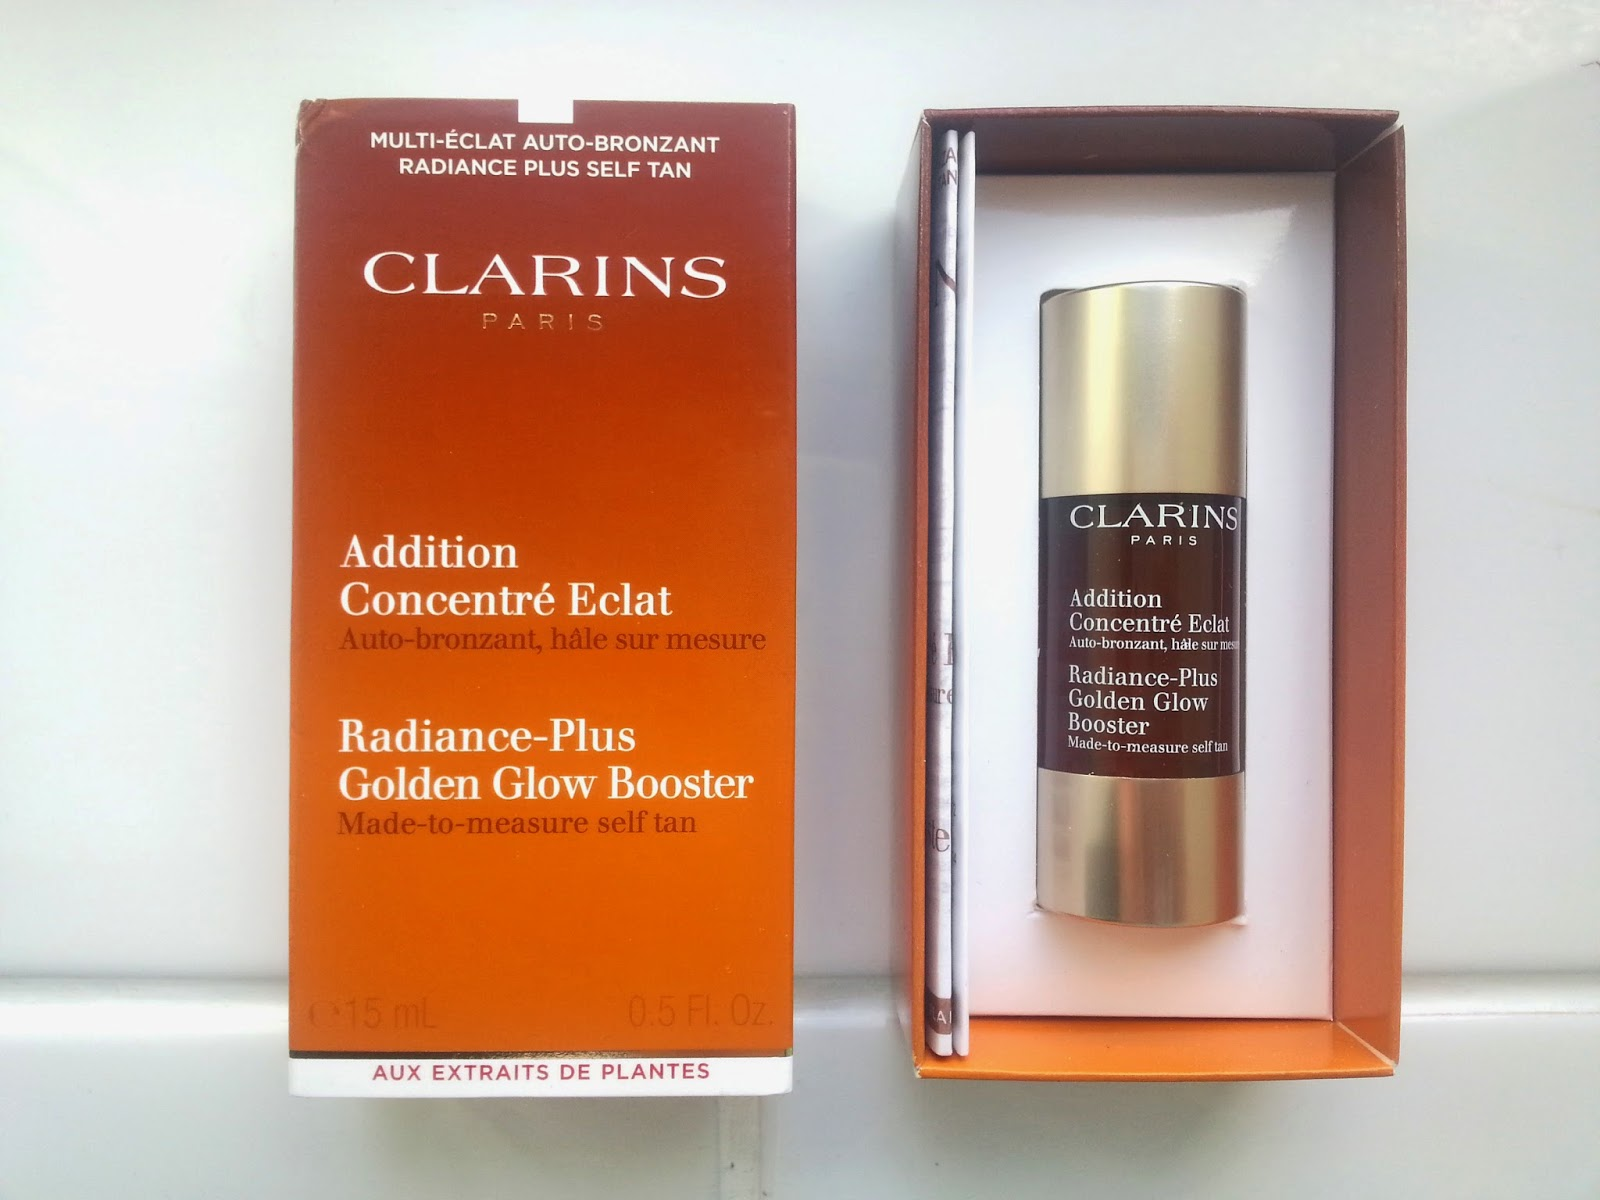 Clarins Radiance-Plus Golden Glow Booster Review